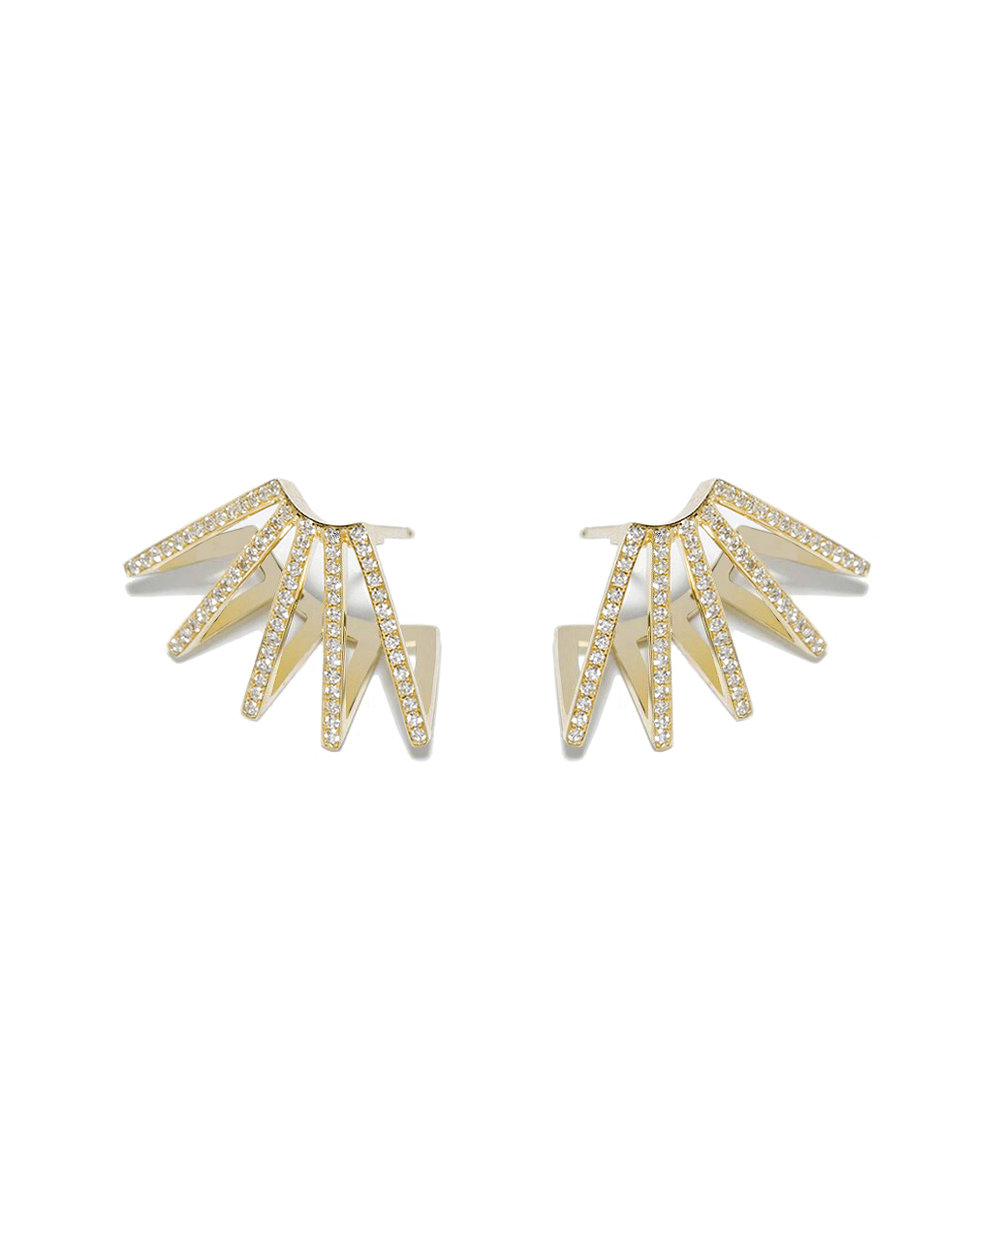 CIRCUIT DIAMOND EARRINGS YG.jpg